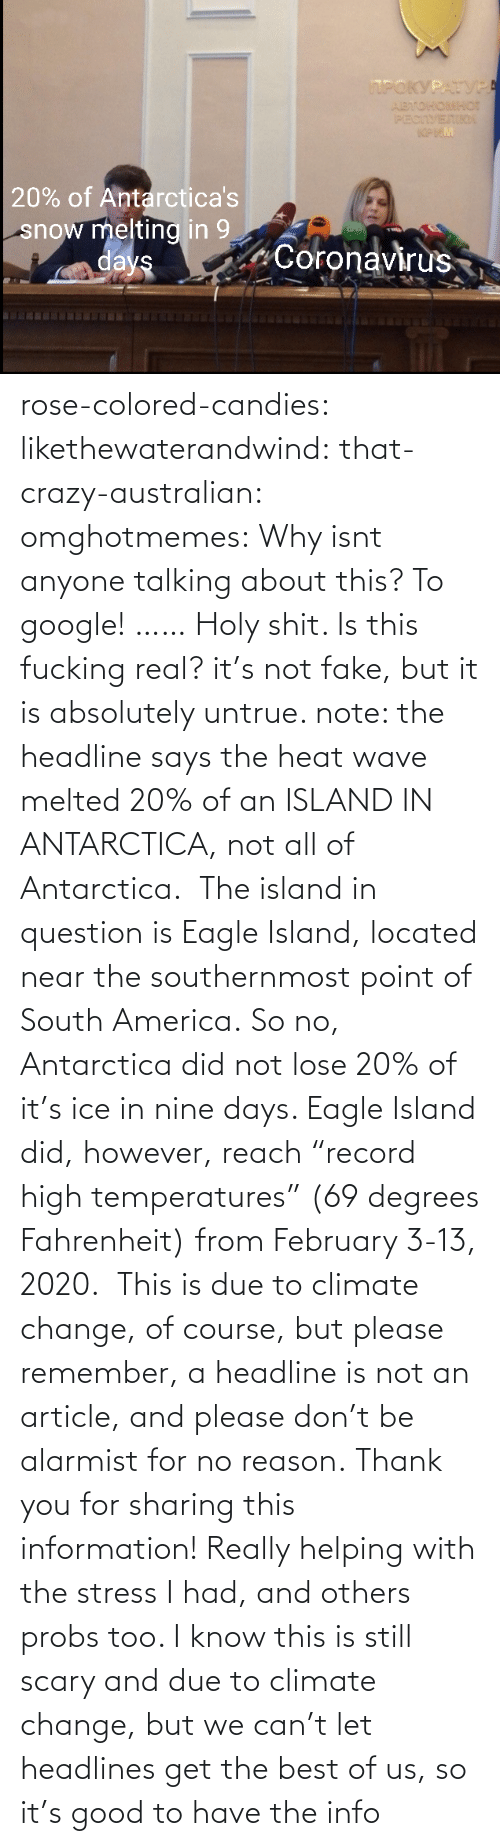 "climate change: rose-colored-candies: likethewaterandwind:   that-crazy-australian:  omghotmemes:  Why isnt anyone talking about this?   To google!  ……   Holy shit. Is this fucking real?   it's not fake, but it is absolutely untrue. note: the headline says the heat wave melted 20% of an ISLAND IN ANTARCTICA, not all of Antarctica.  The island in question is Eagle Island, located near the southernmost point of South America. So no, Antarctica did not lose 20% of it's ice in nine days. Eagle Island did, however, reach ""record high temperatures"" (69 degrees Fahrenheit) from February 3-13, 2020.  This is due to climate change, of course, but please remember, a headline is not an article, and please don't be alarmist for no reason.    Thank you for sharing this information! Really helping with the stress I had, and others probs too. I know this is still scary and due to climate change, but we can't let headlines get the best of us, so it's good to have the info"